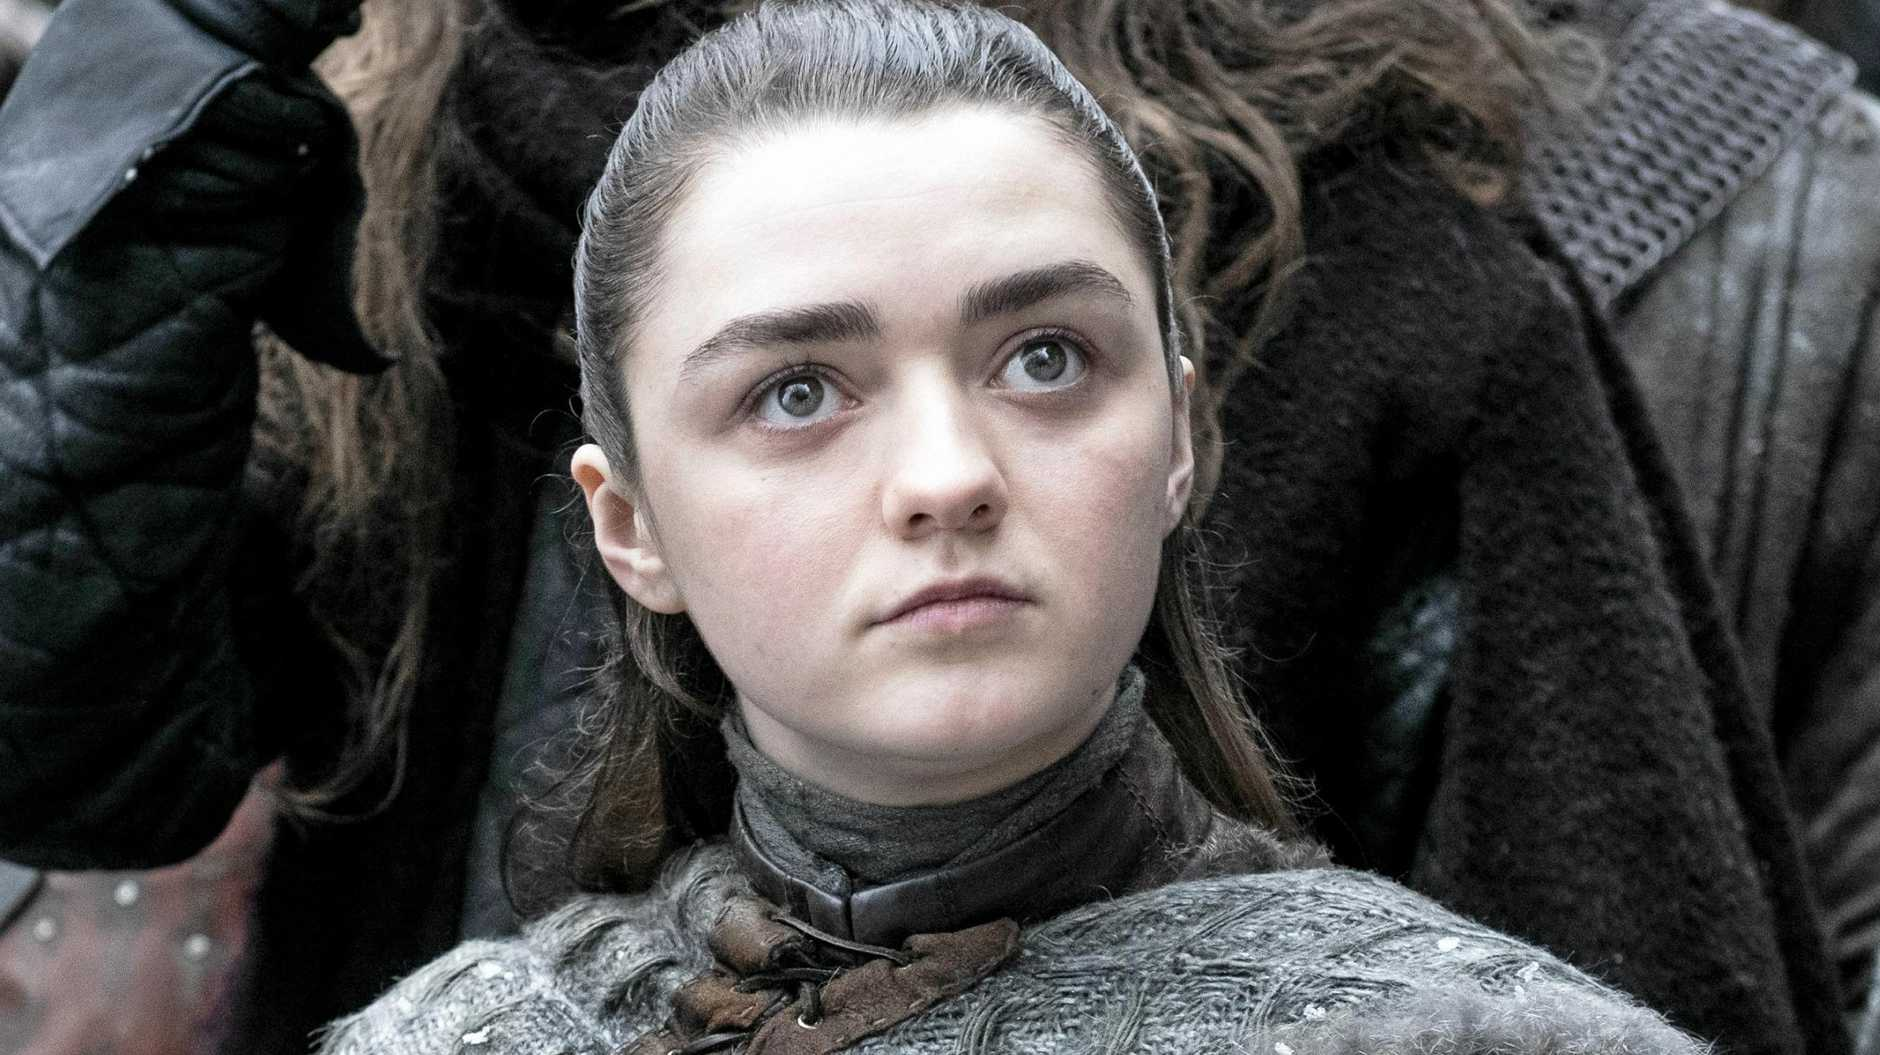 Maisie Williams as Arya Stark.